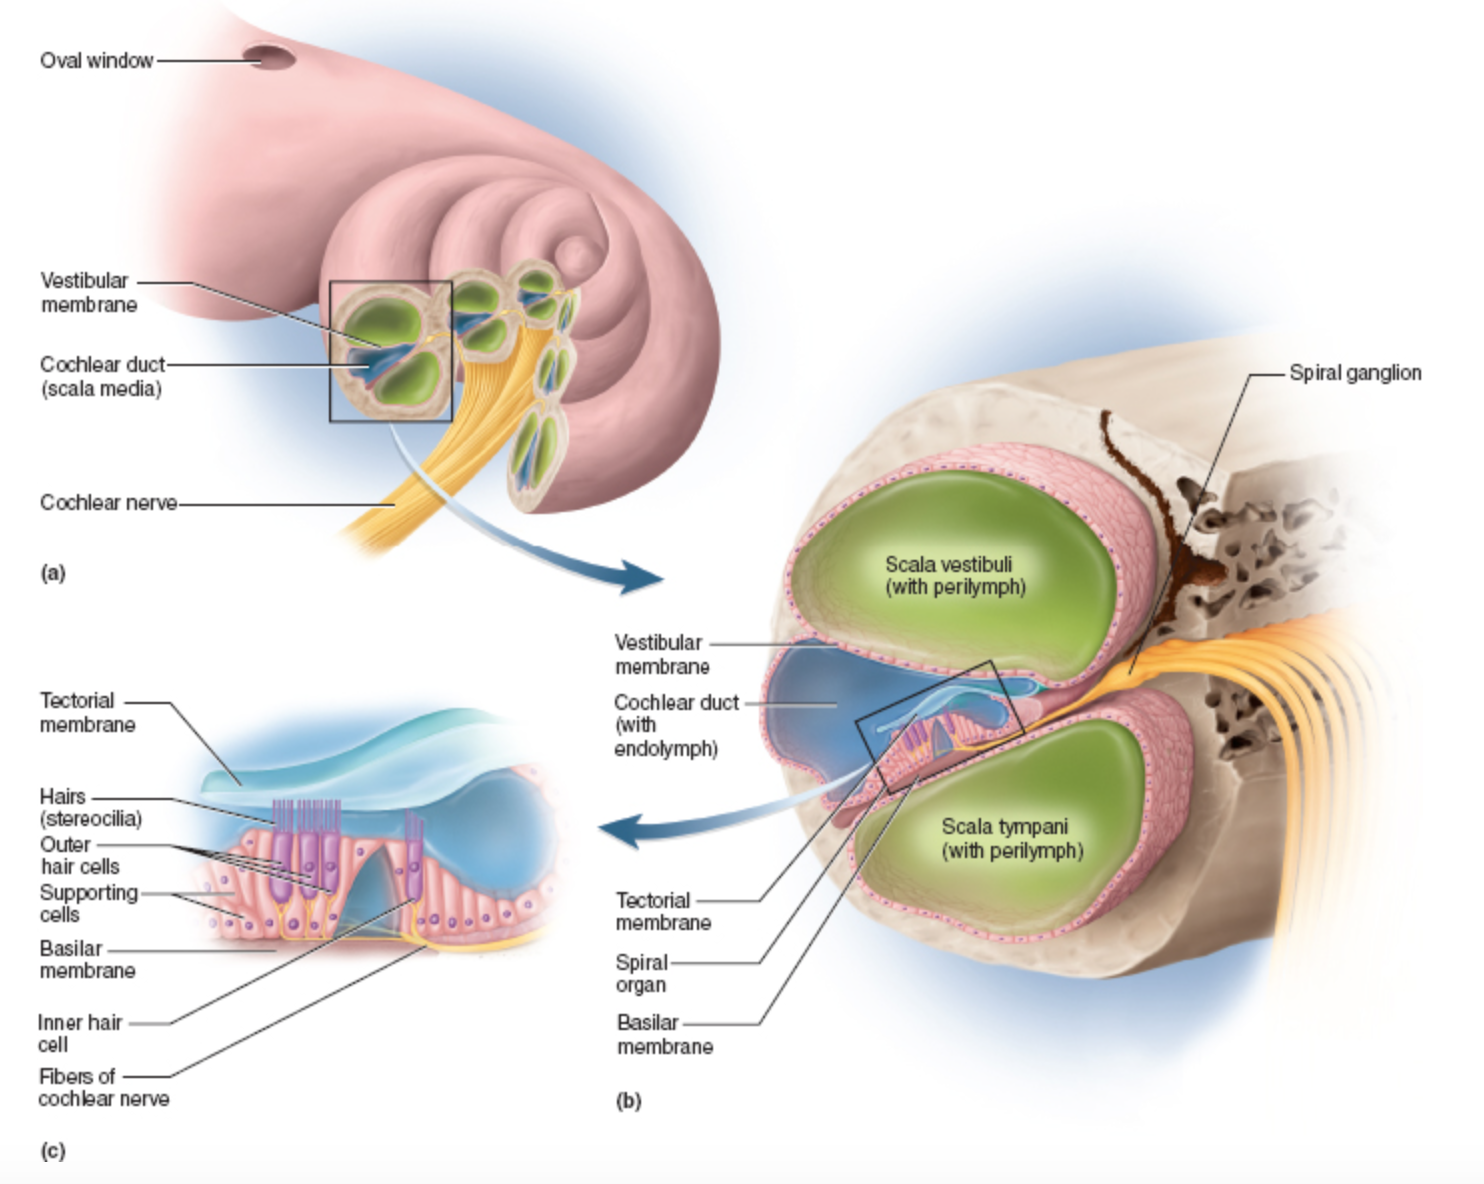 medium resolution of the fluids move into the scala vestibule and out the scala lymphani the cochlear duct contains the spiral organ organ of corti